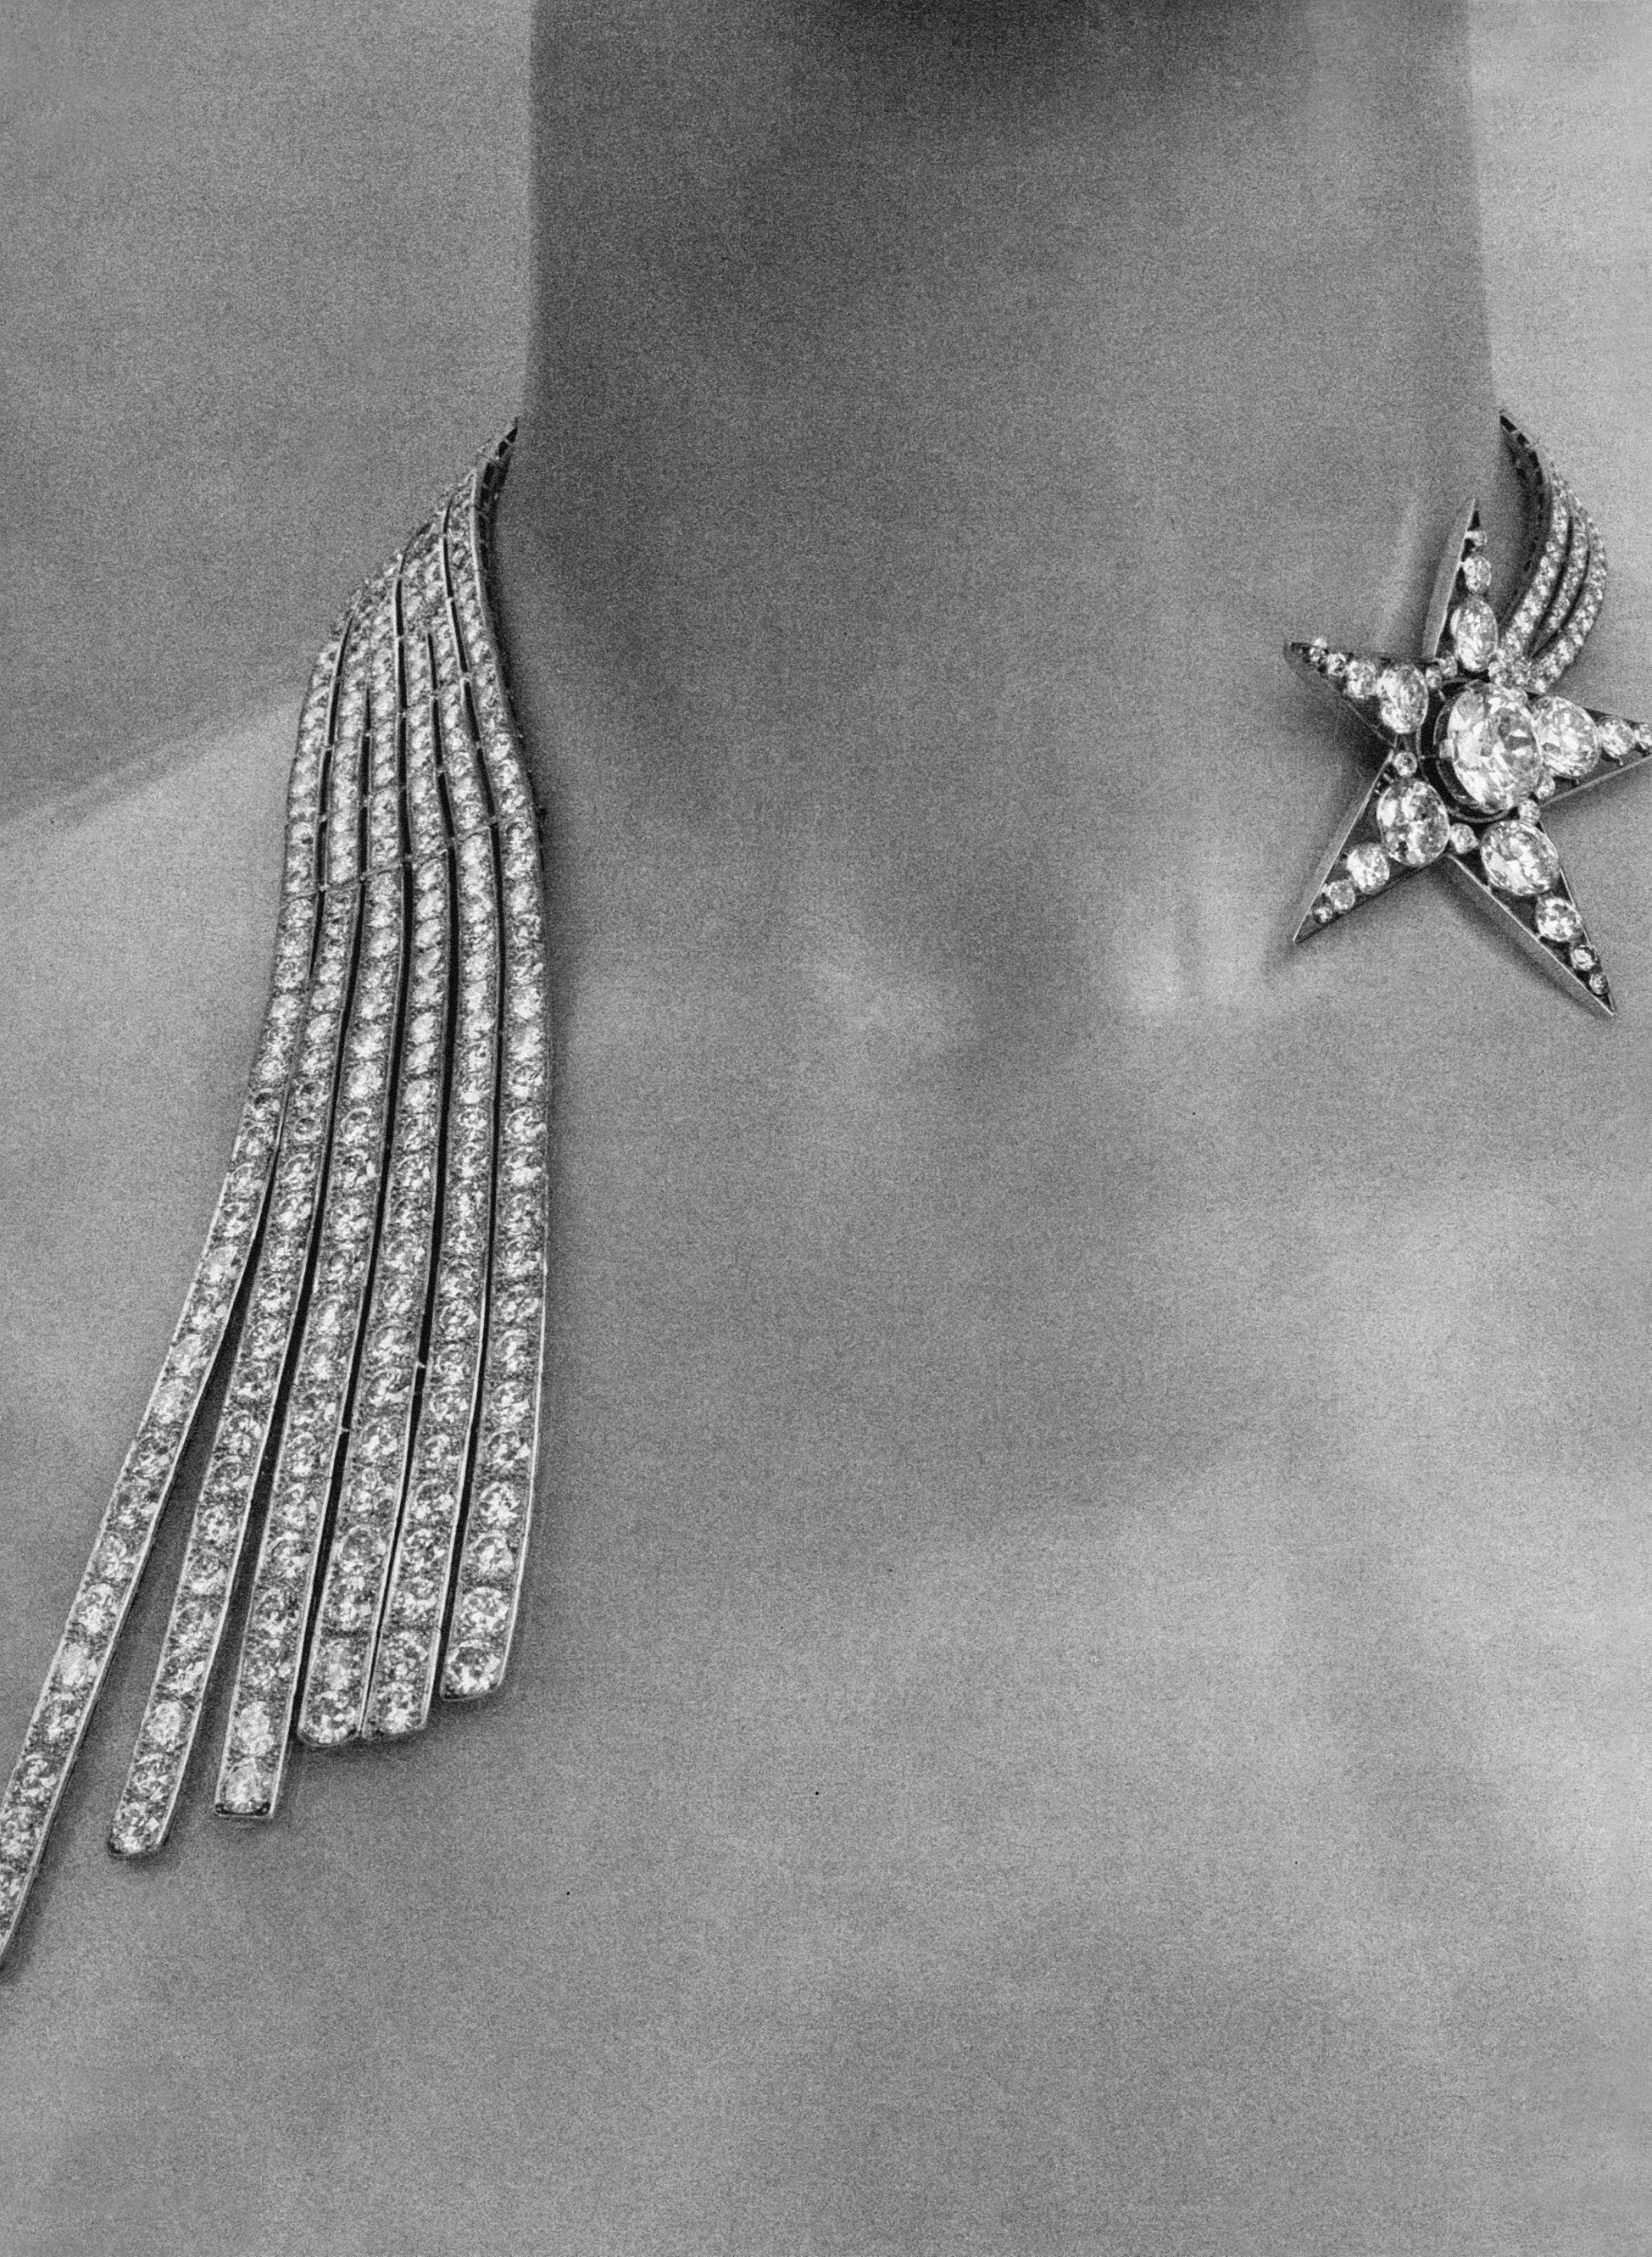 coco-chanel-jewelry-necklace-refined-magazine-542386015